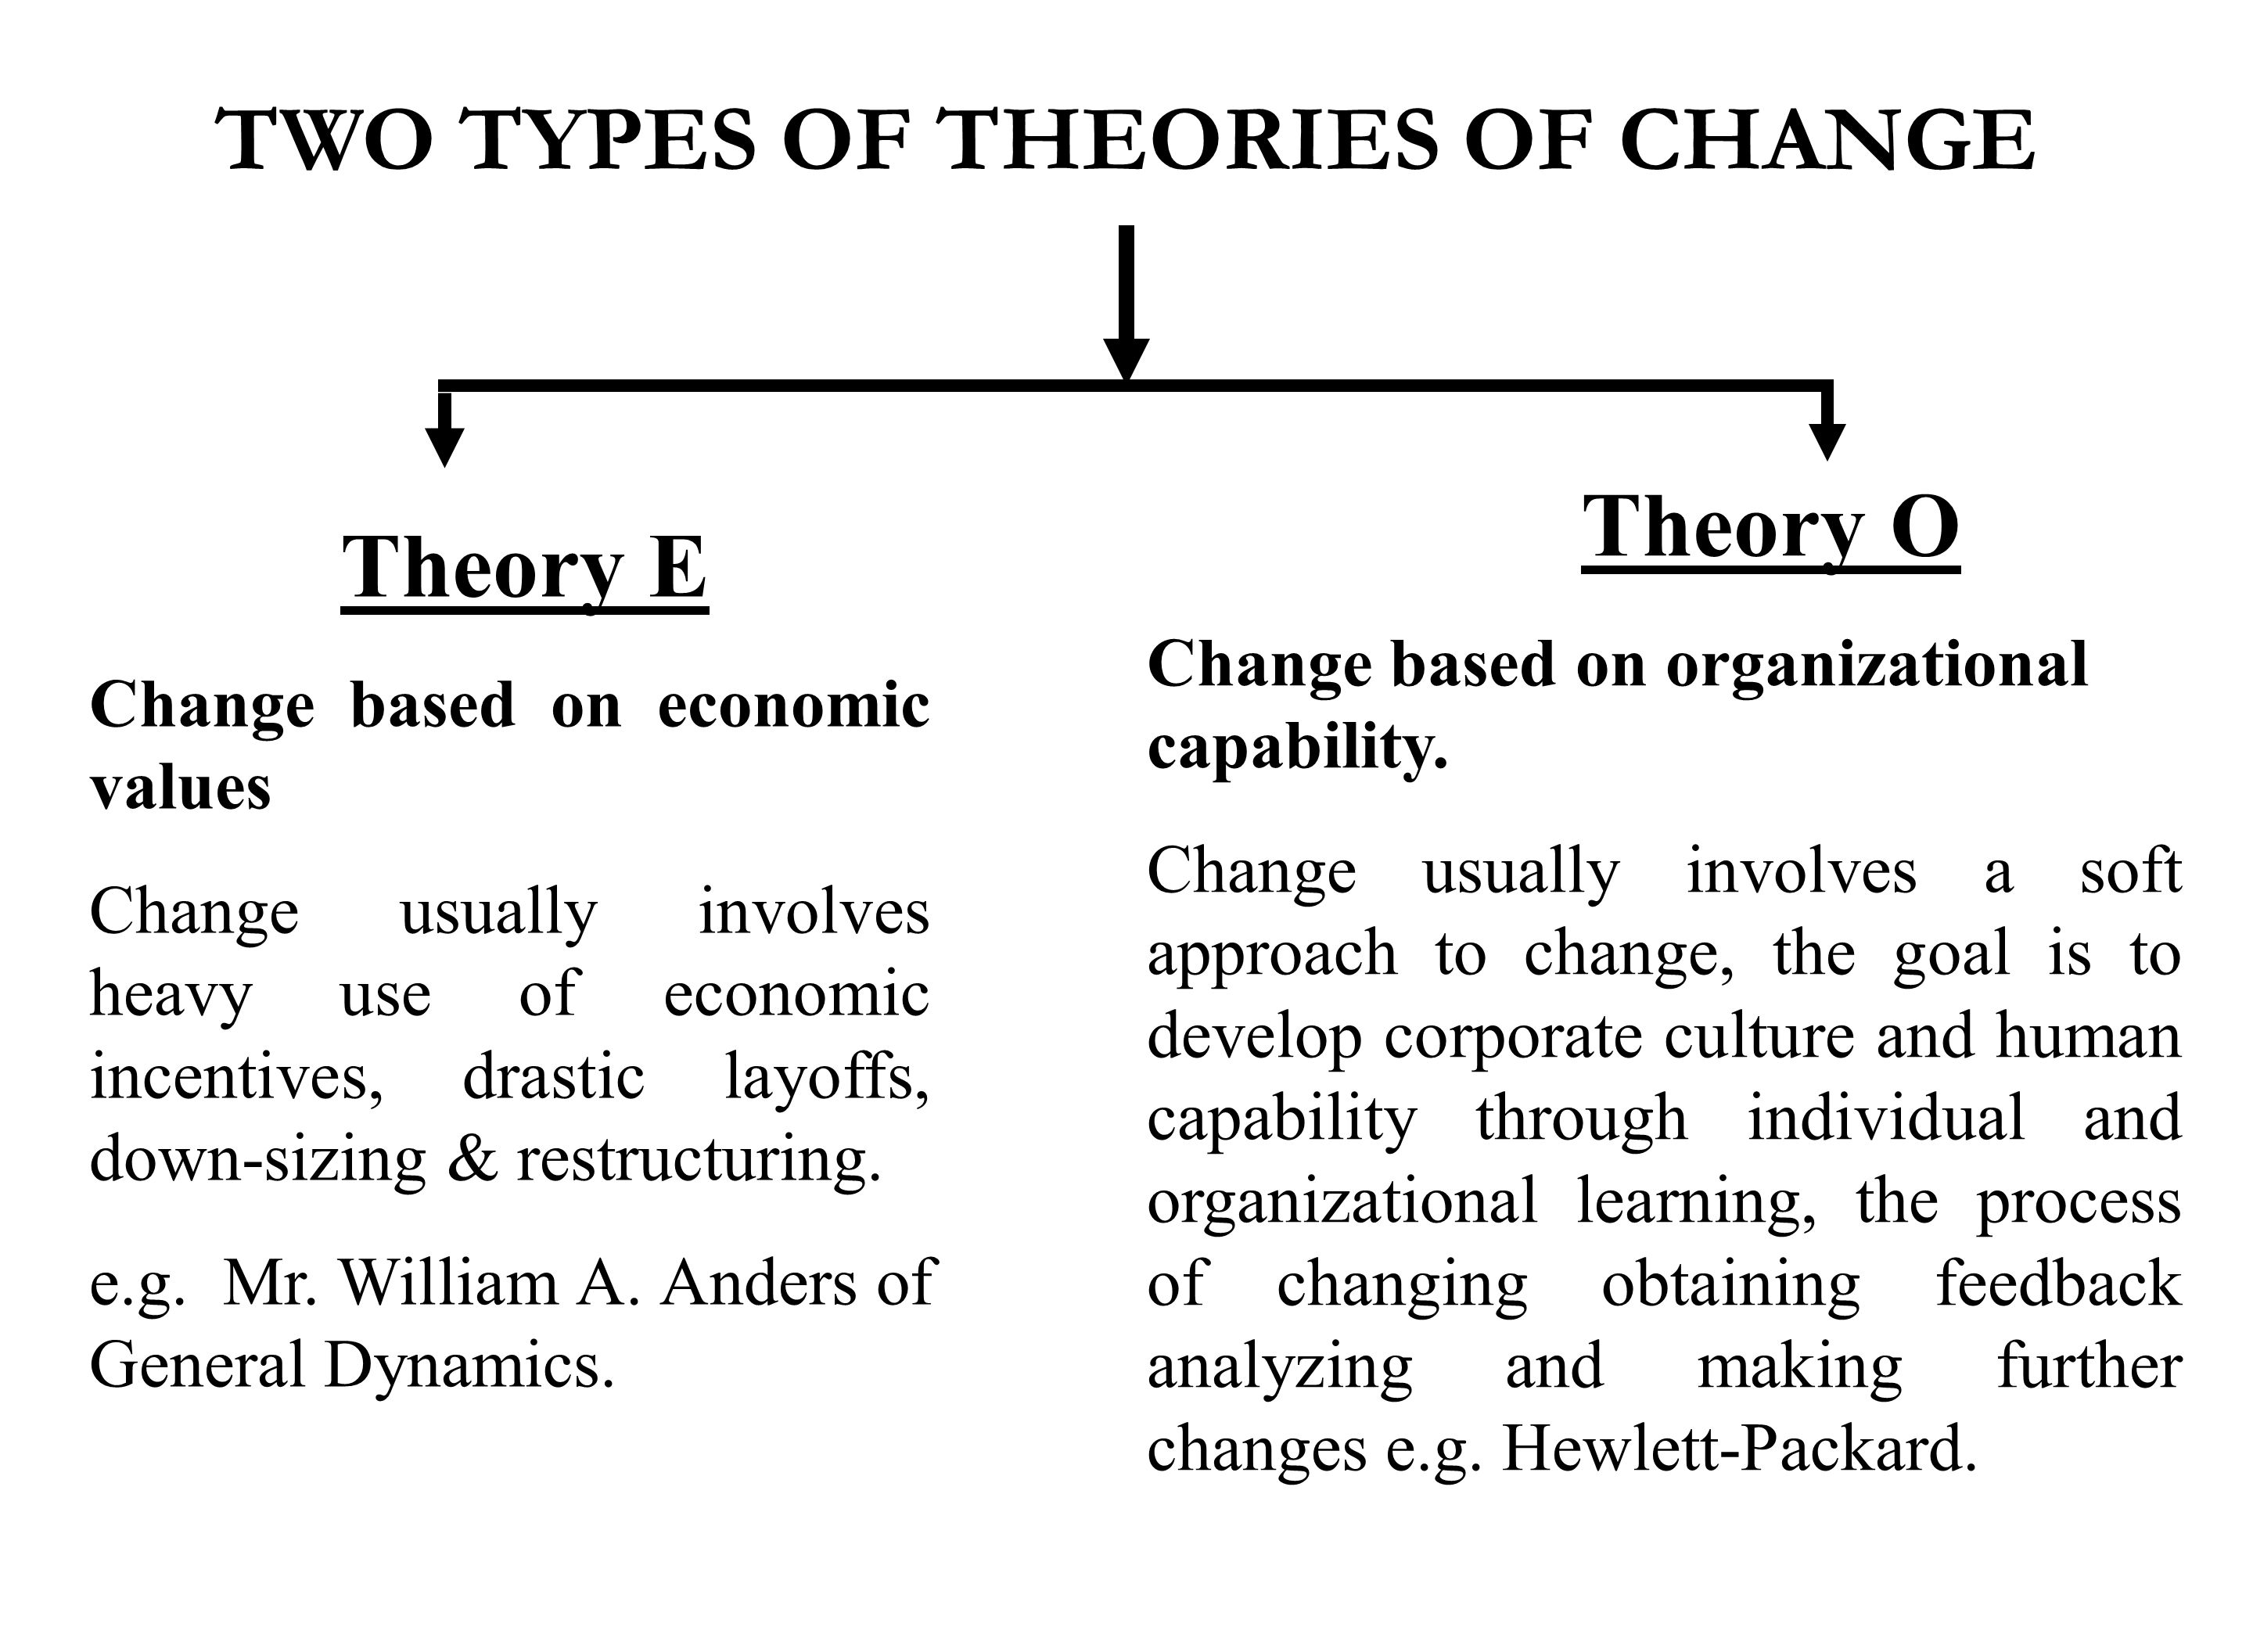 TWO TYPES OF THEORIES OF CHANGE Theory E Change based on economic values Change usually involves heavy use of economic incentives, drastic layoffs, down-sizing & restructuring.